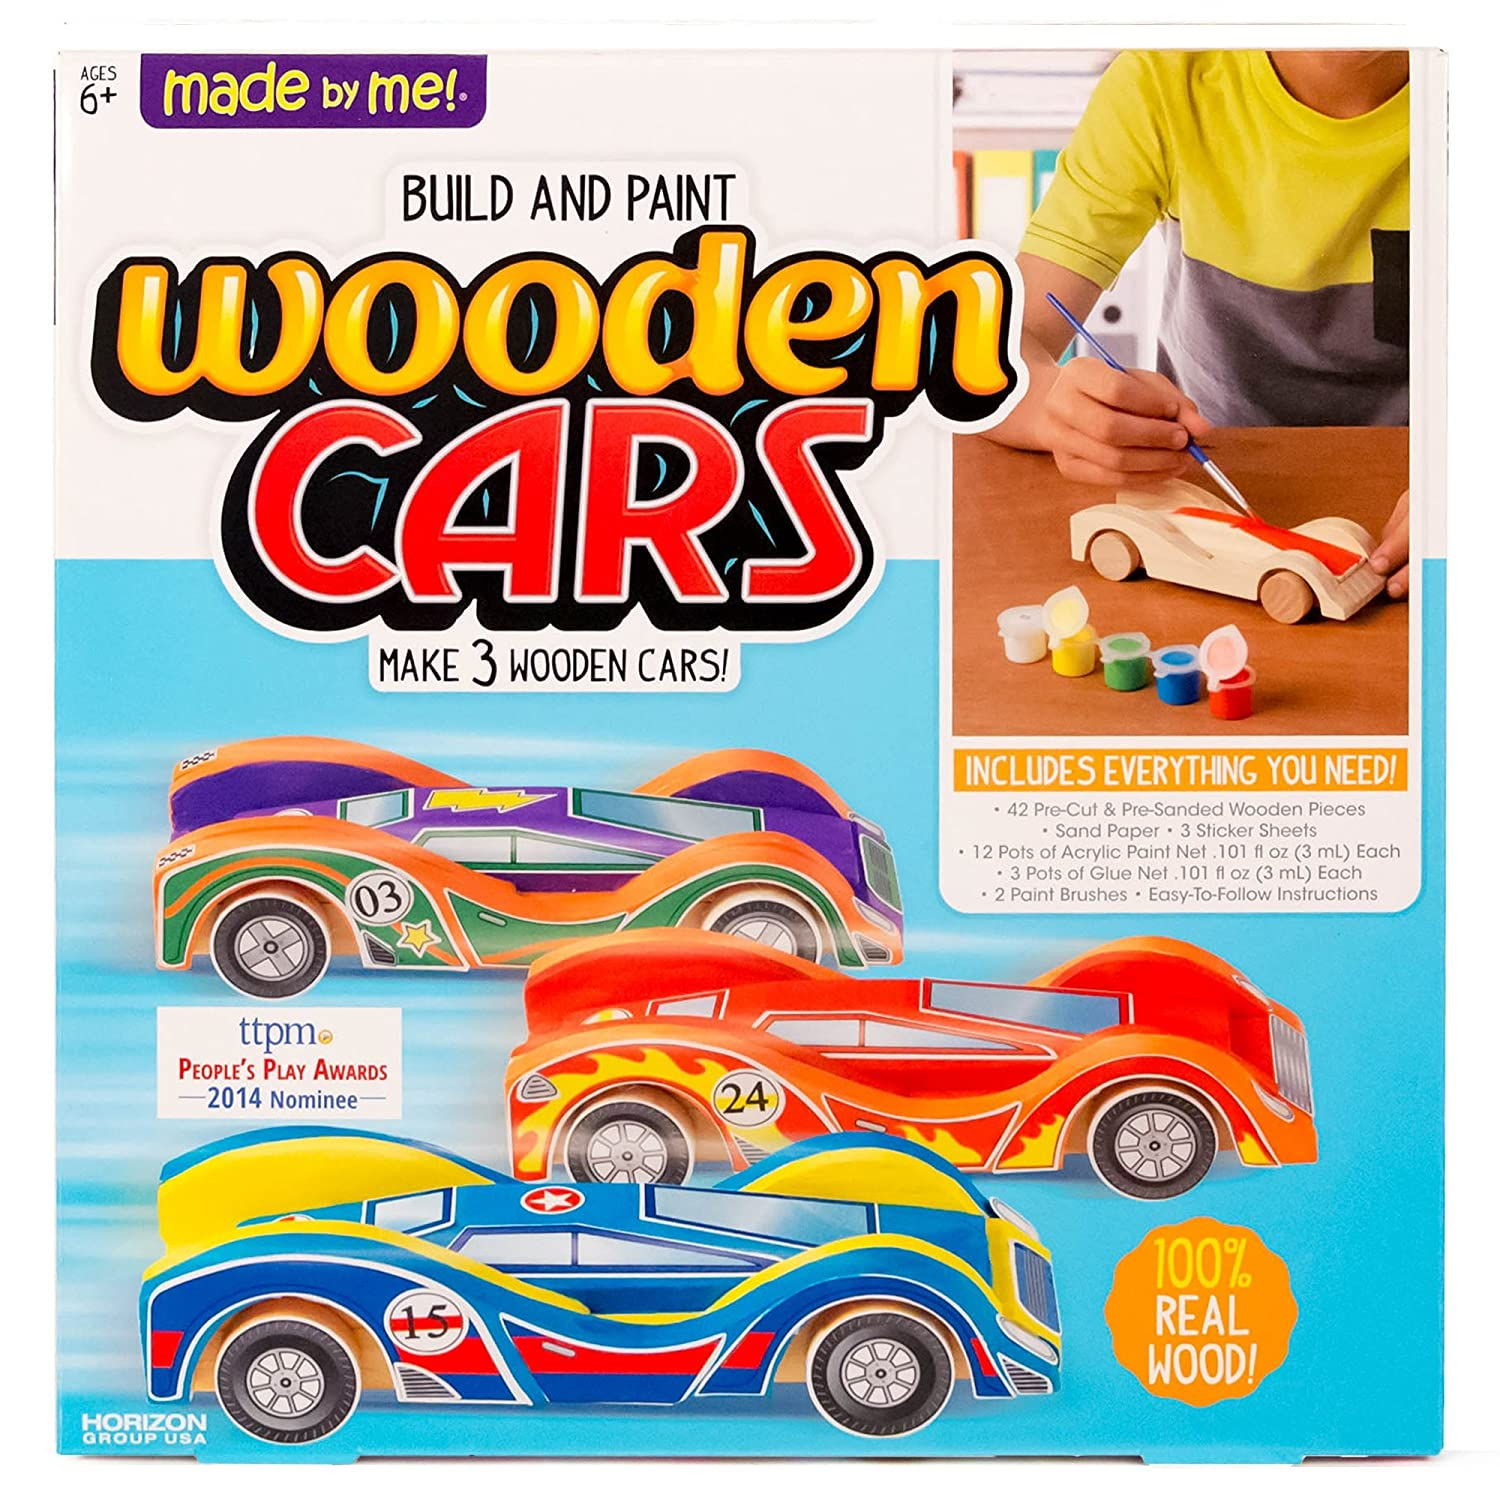 Made By Me Build & Paint Your Own Wooden Cars by Horizon Group Usa, DIY Wood Craft Kit